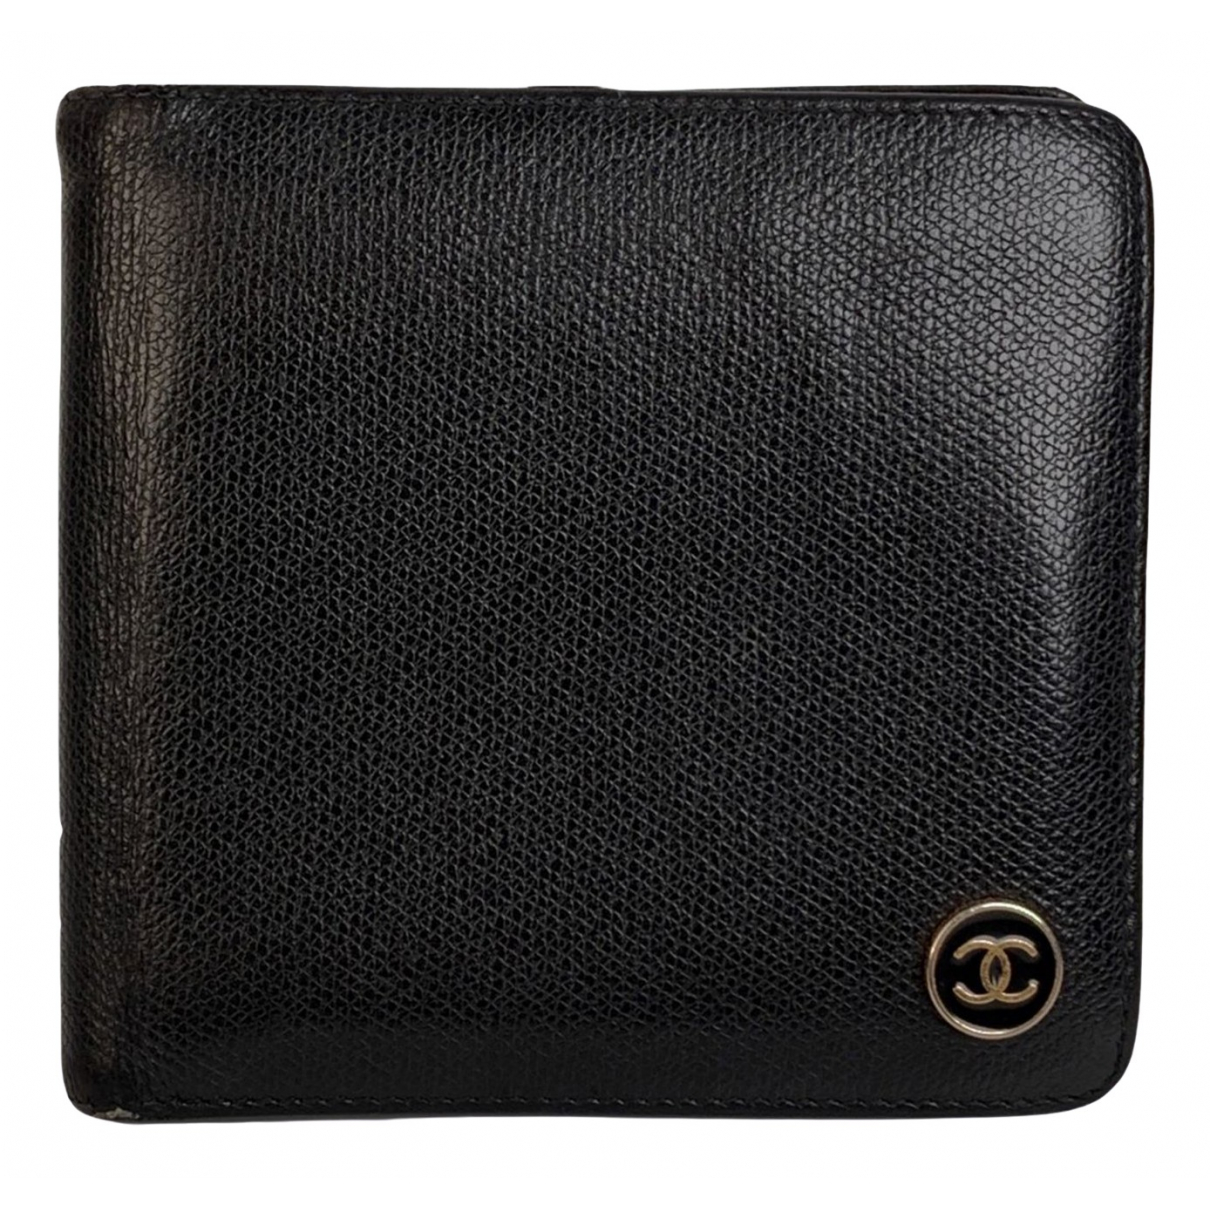 Chanel \N Black Leather wallet for Women \N